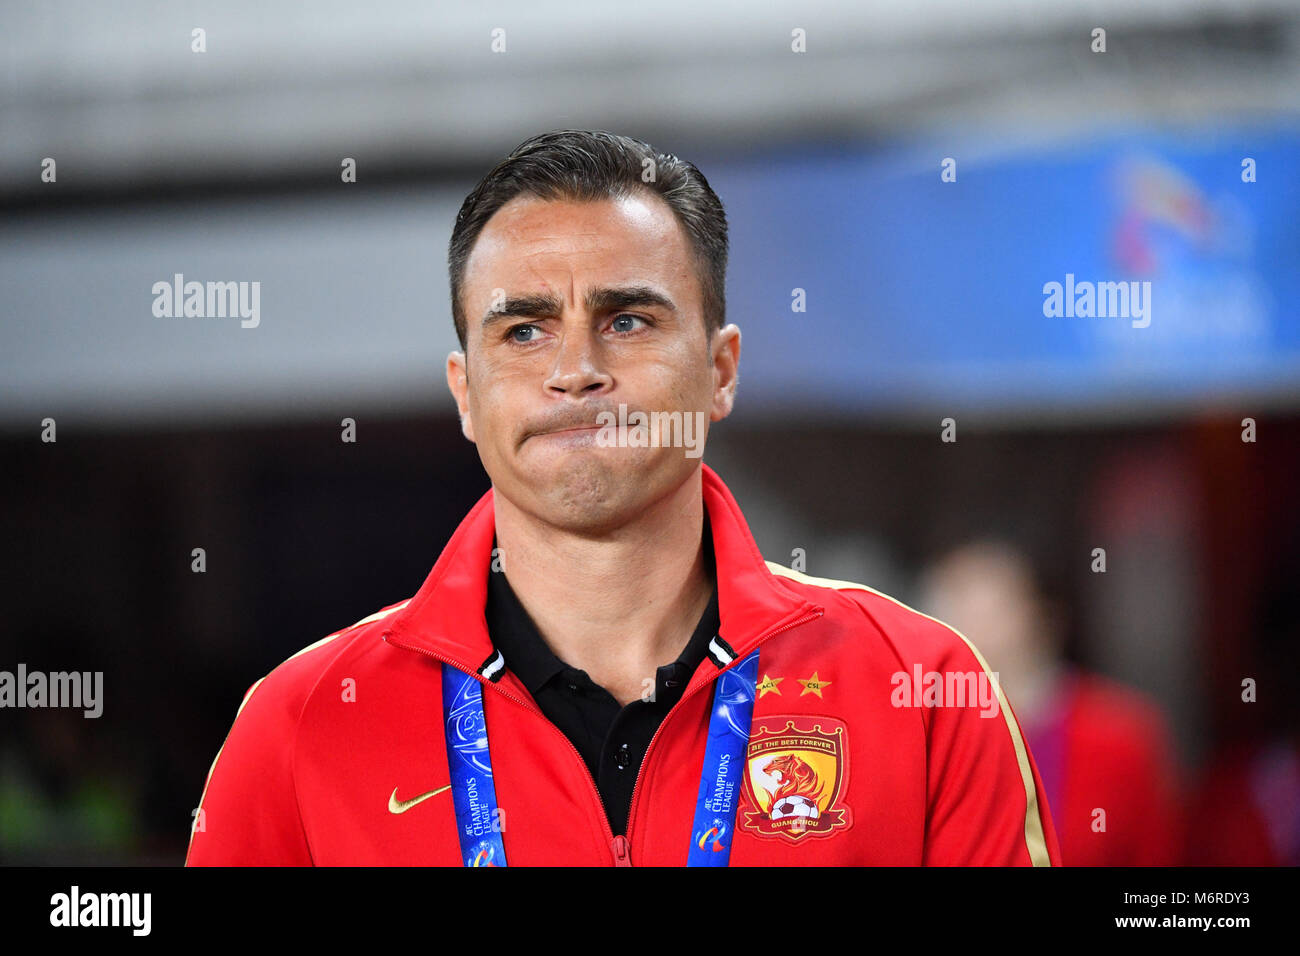 Guanghzou, China's Guangdong province. 6th Mar, 2018. Head coach of Guangzhou Evergrande Fabio Cannavaro reacts Stock Photo